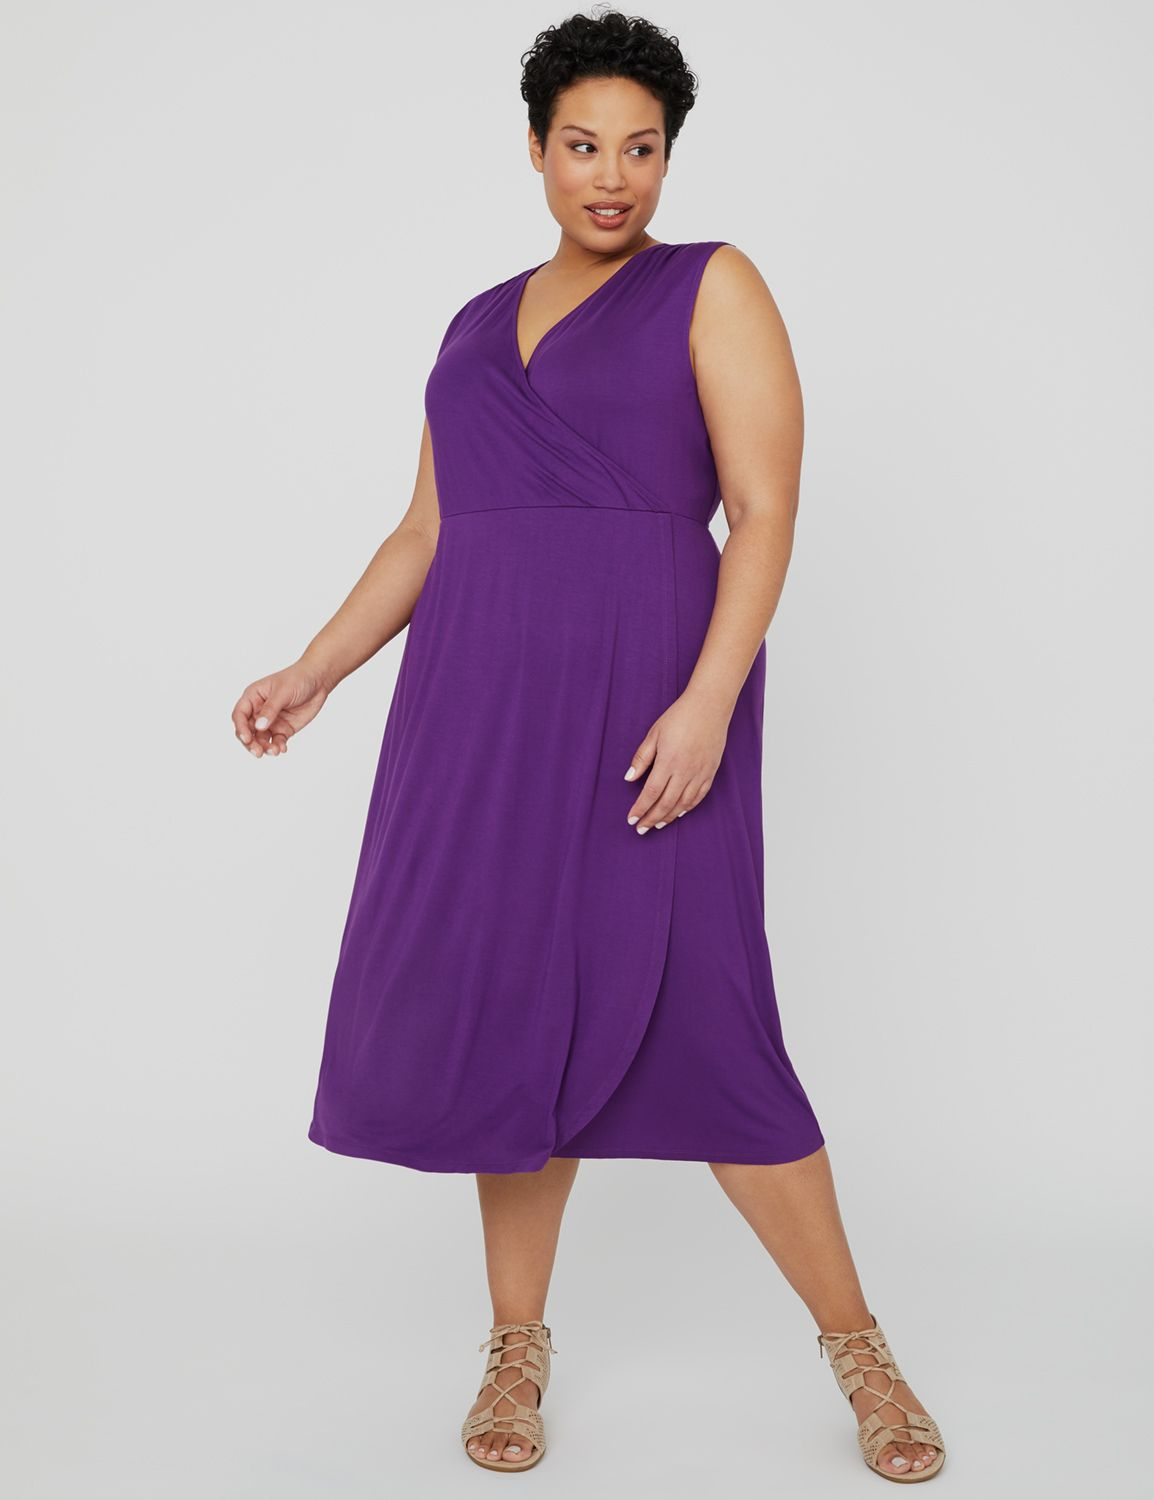 Riverview Wrap Dress 1088151 Vneck Front and Back Maxi E MP-300102363